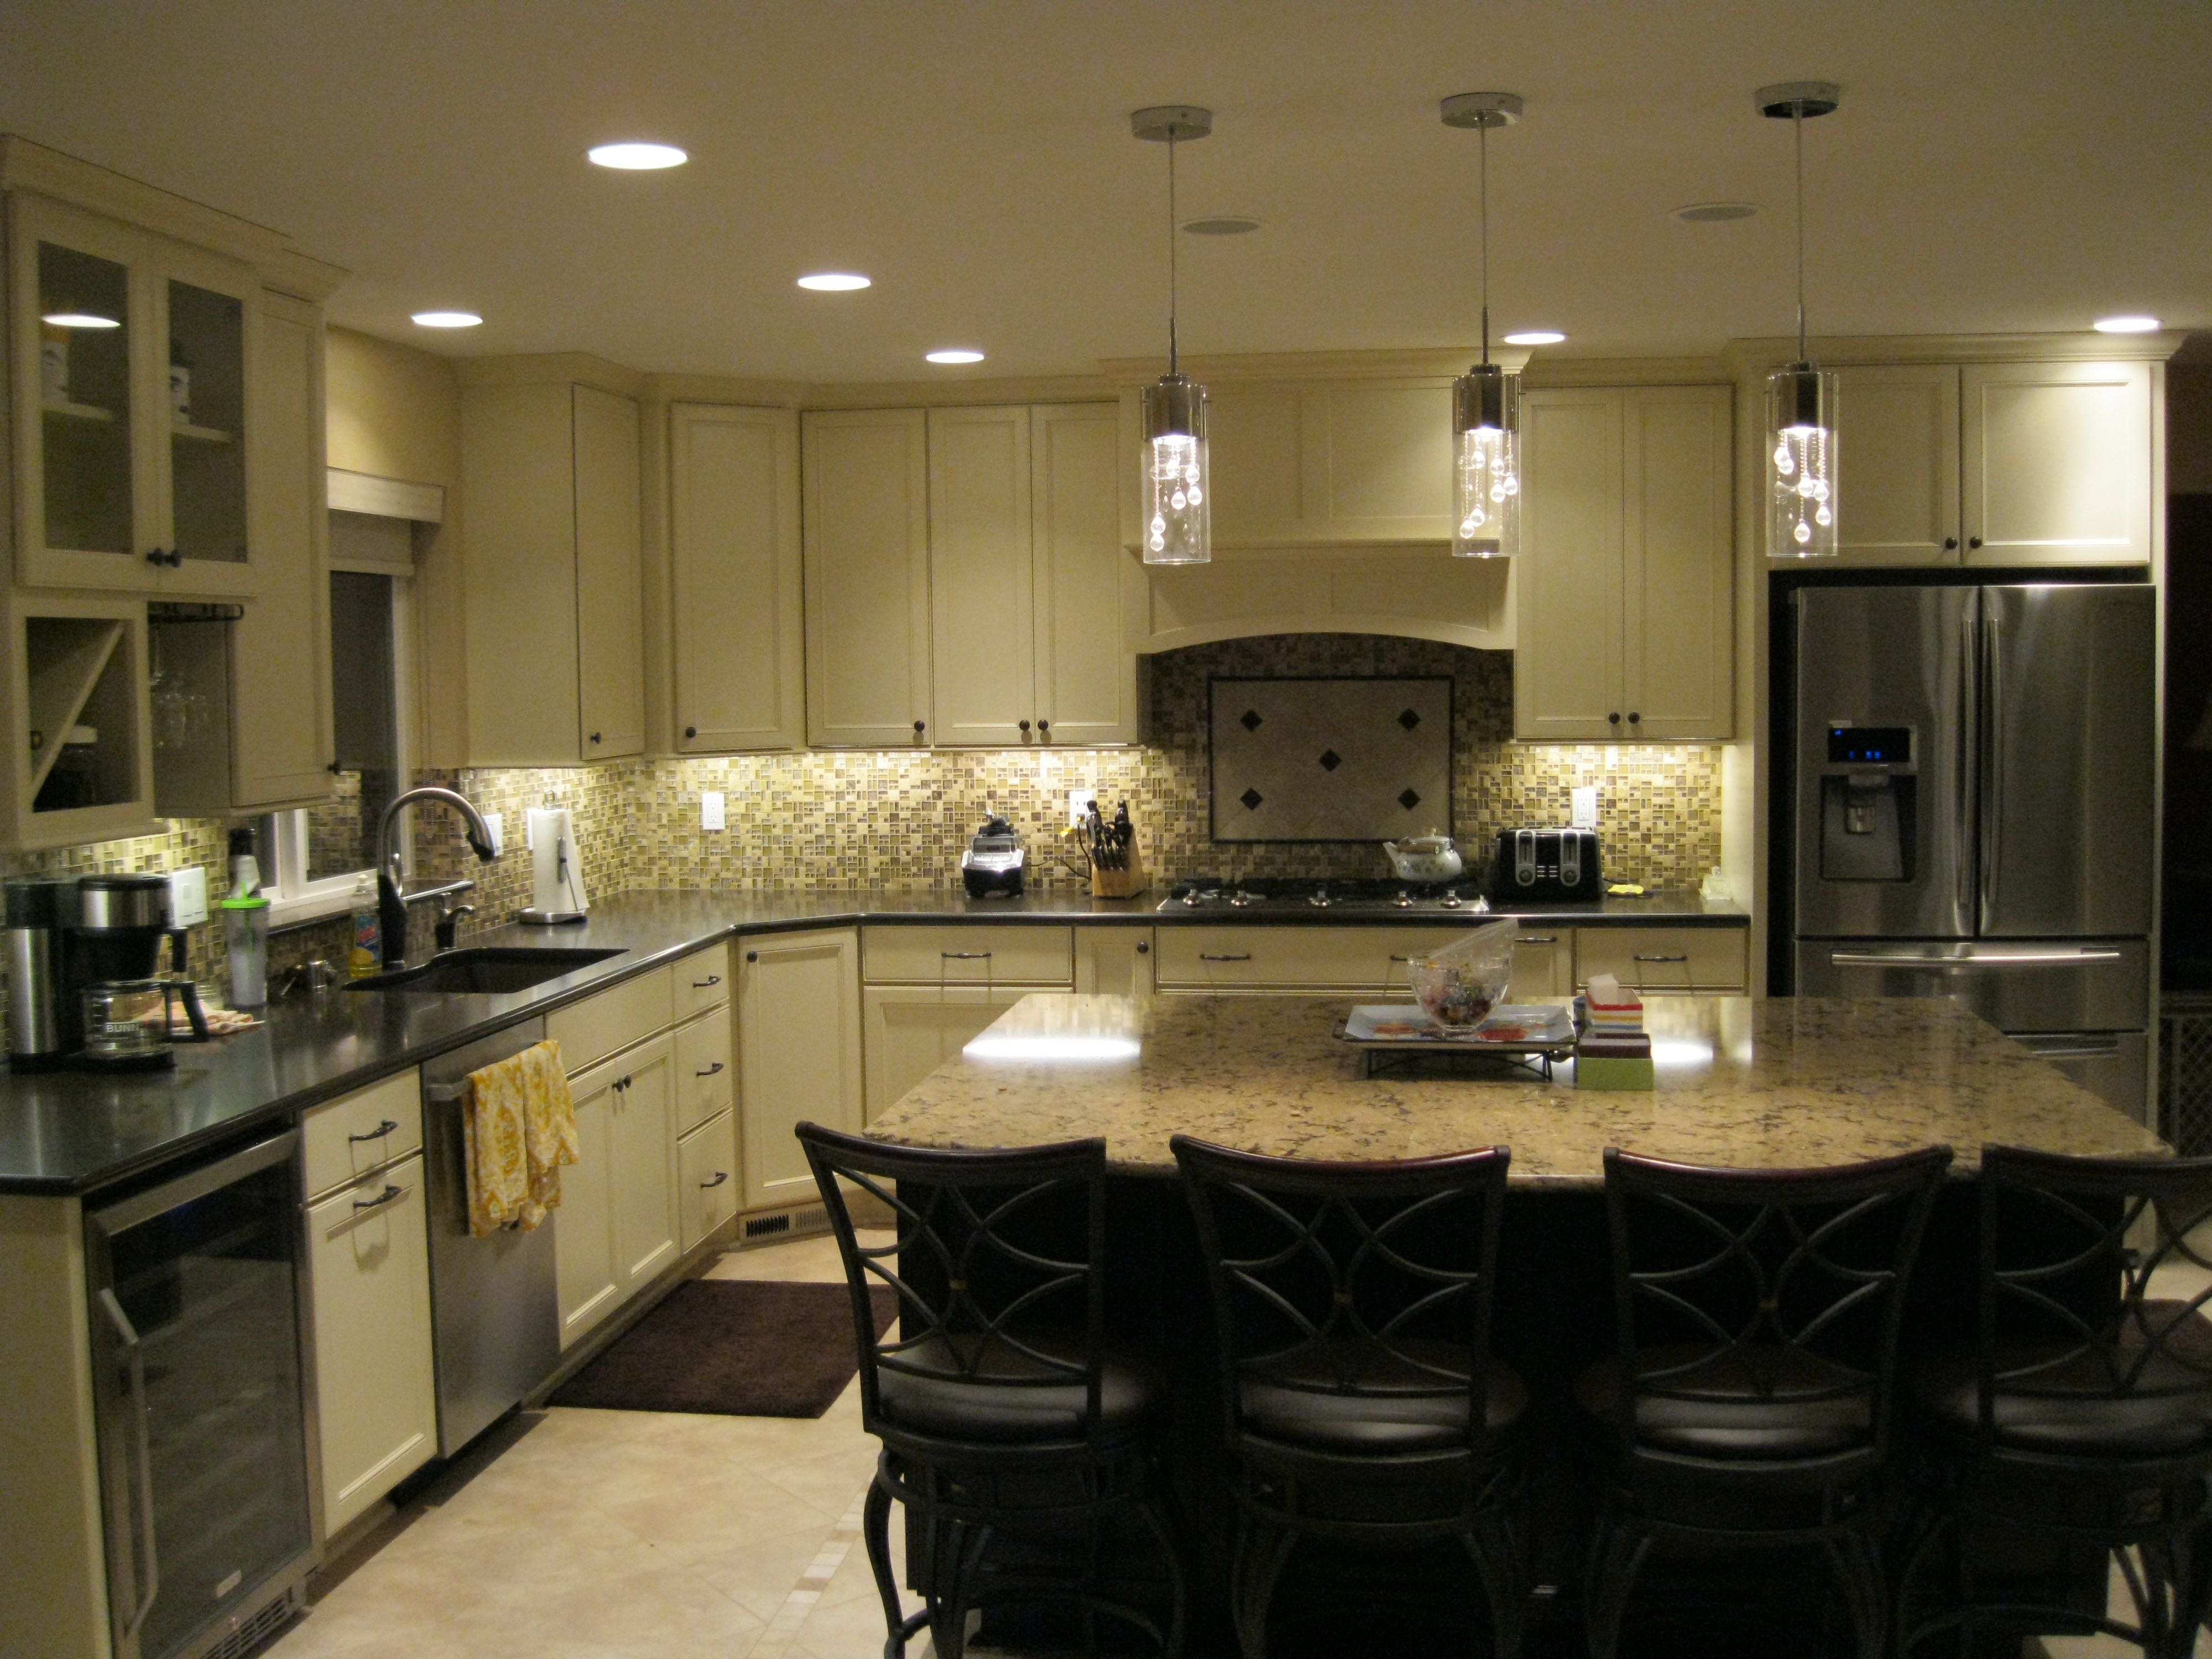 Best Places To Buy Kitchen Cabinets The Kitchen Place Guide Buying Ikea Vs Custom Cabinets